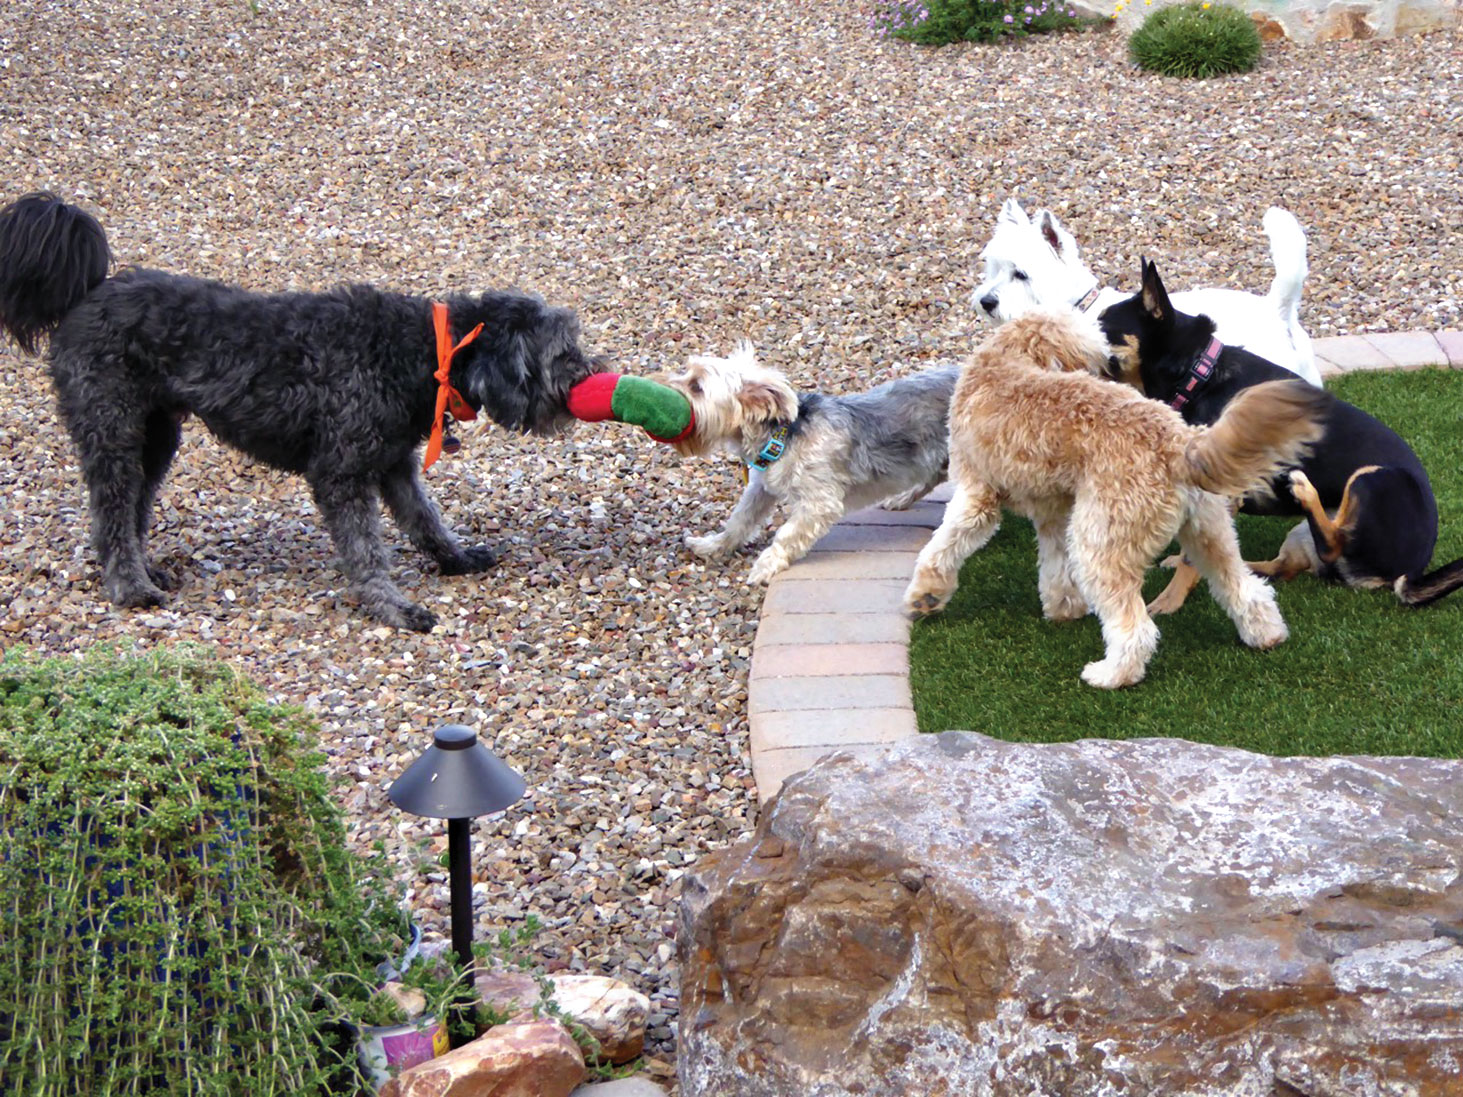 Dogs left to right: Sig, Scupper, Rocky, Abigale and Kona